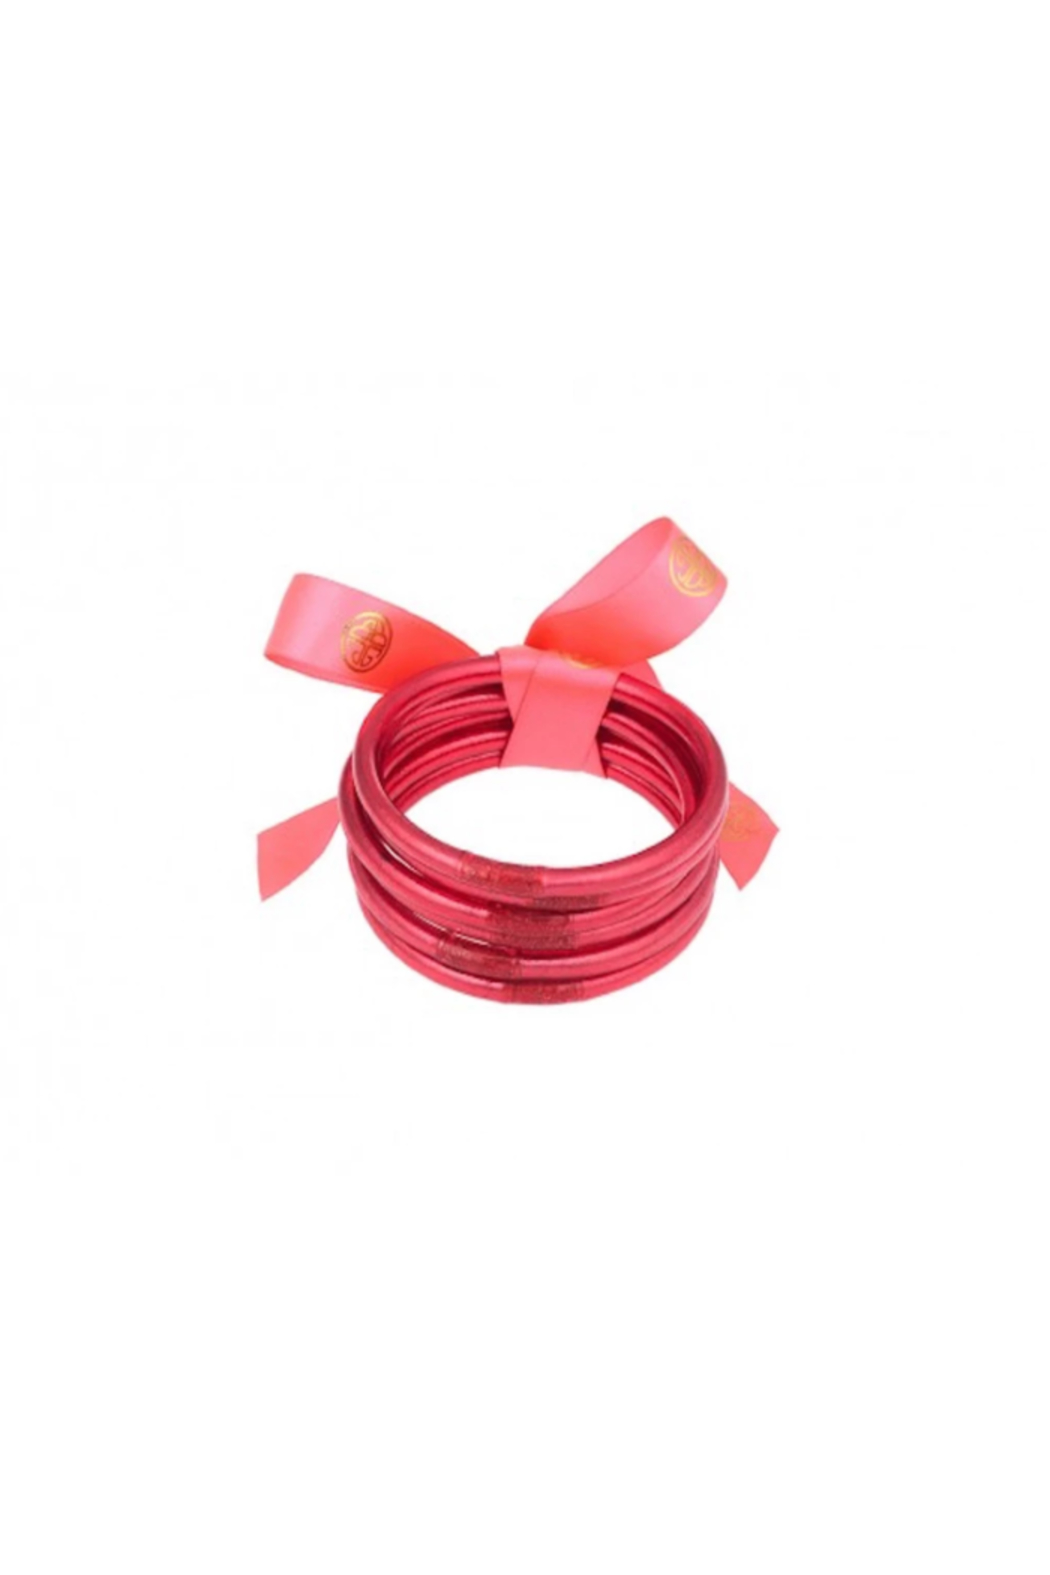 The Birds Nest DARK PINK ALL WEATHER SERENITY BANGLES-MEDIUM - Front Full Image